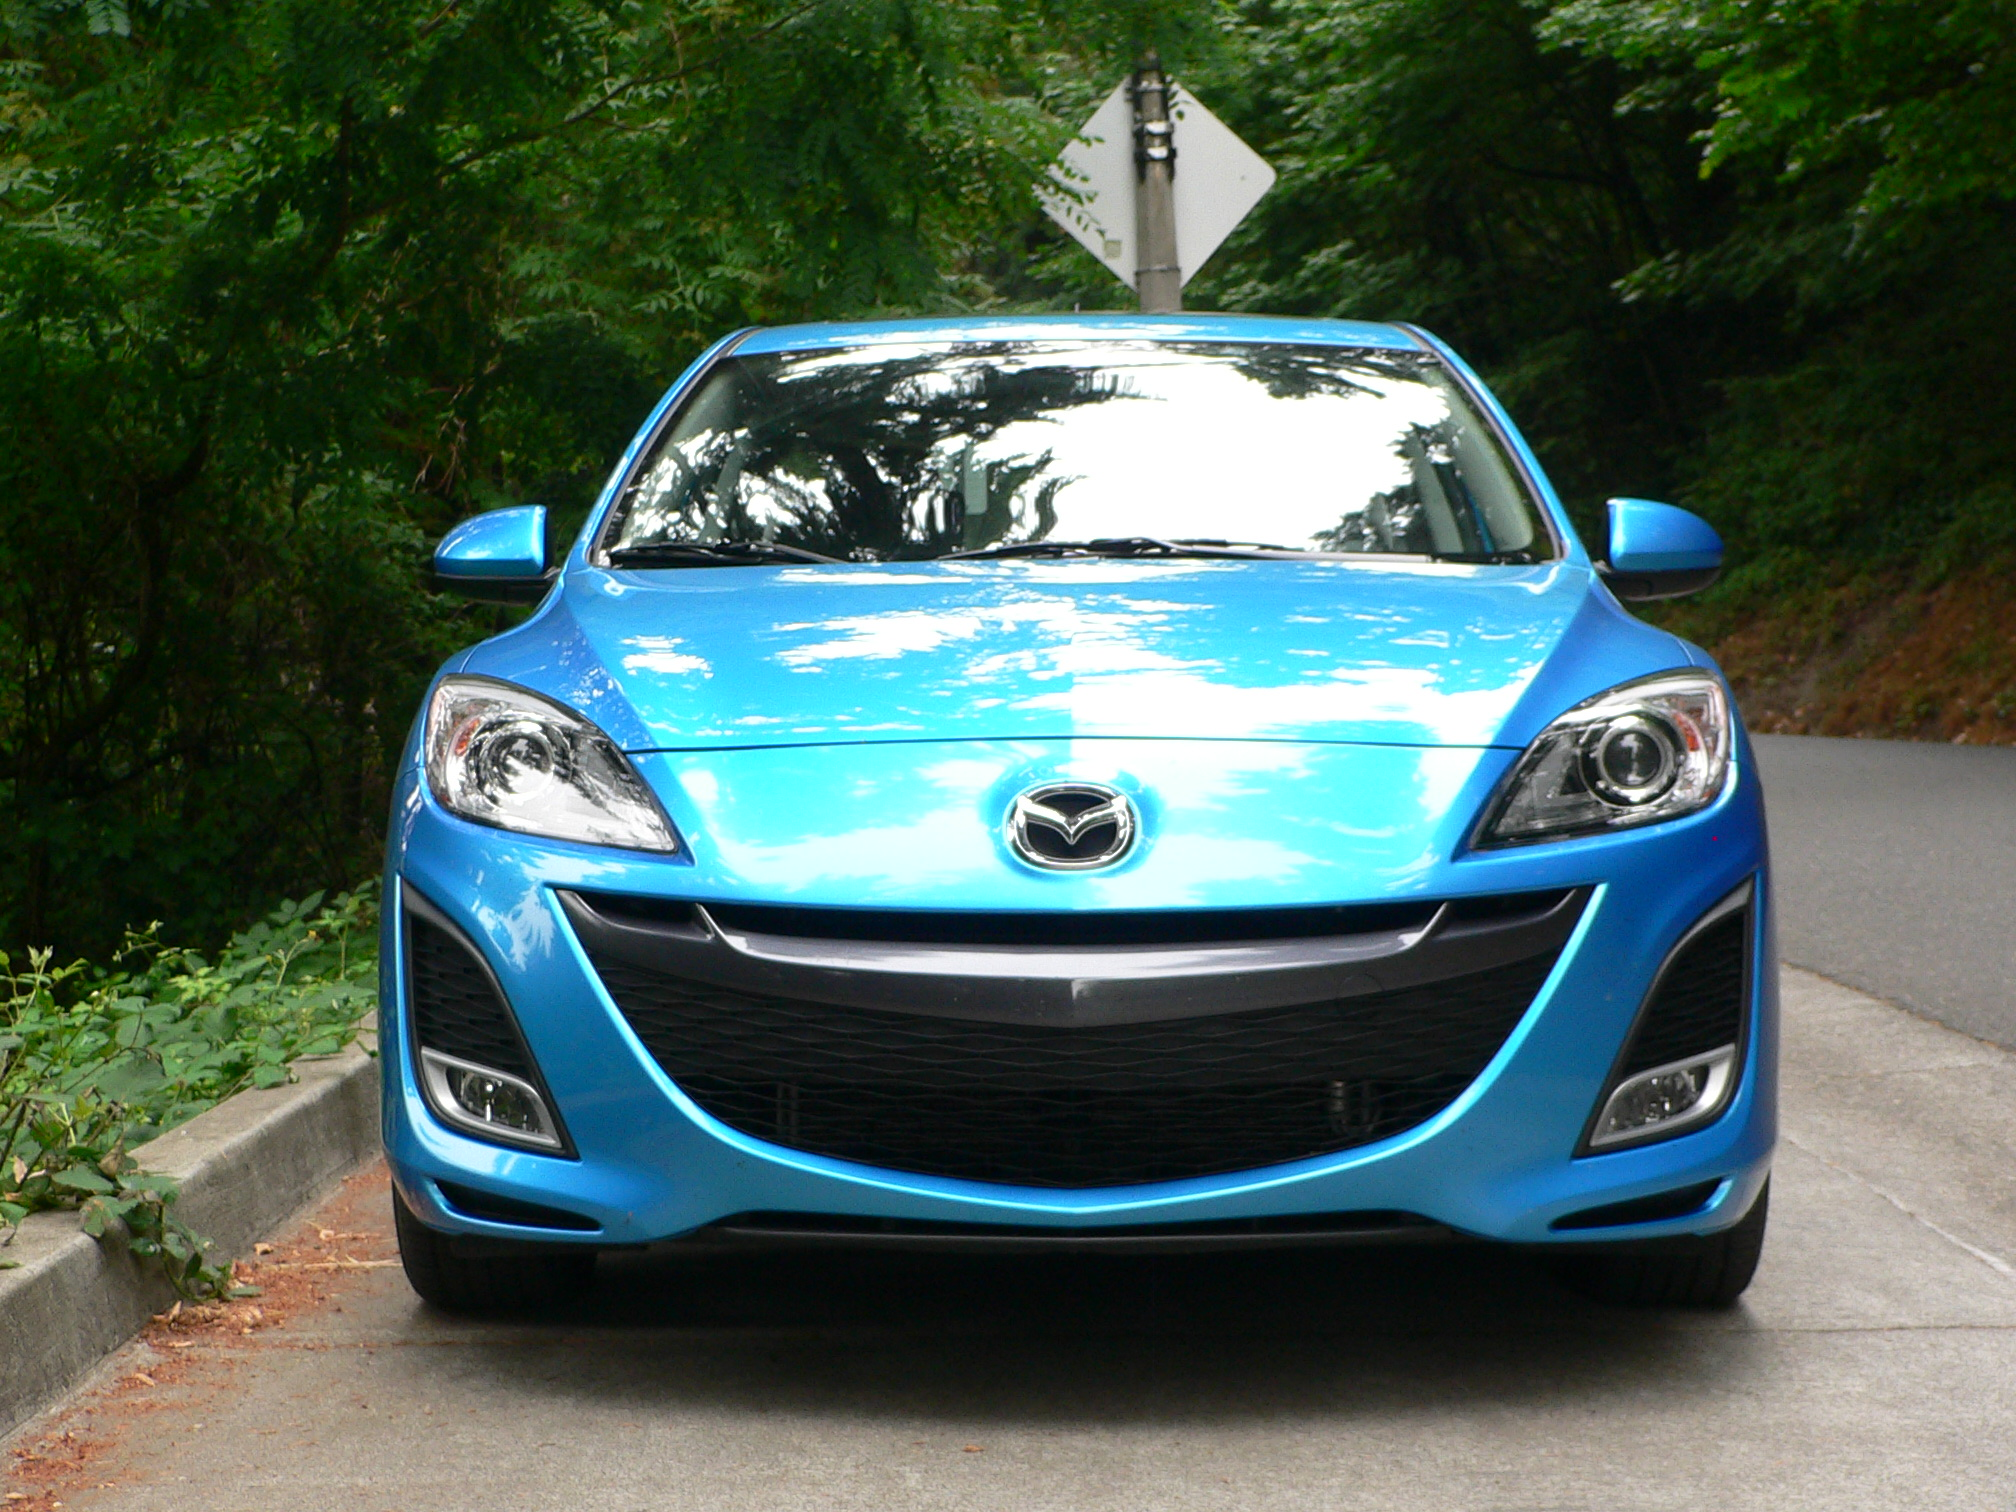 madza recalls 2011 mazda2 2010 2011 mazda3 mazdaspeed3. Black Bedroom Furniture Sets. Home Design Ideas